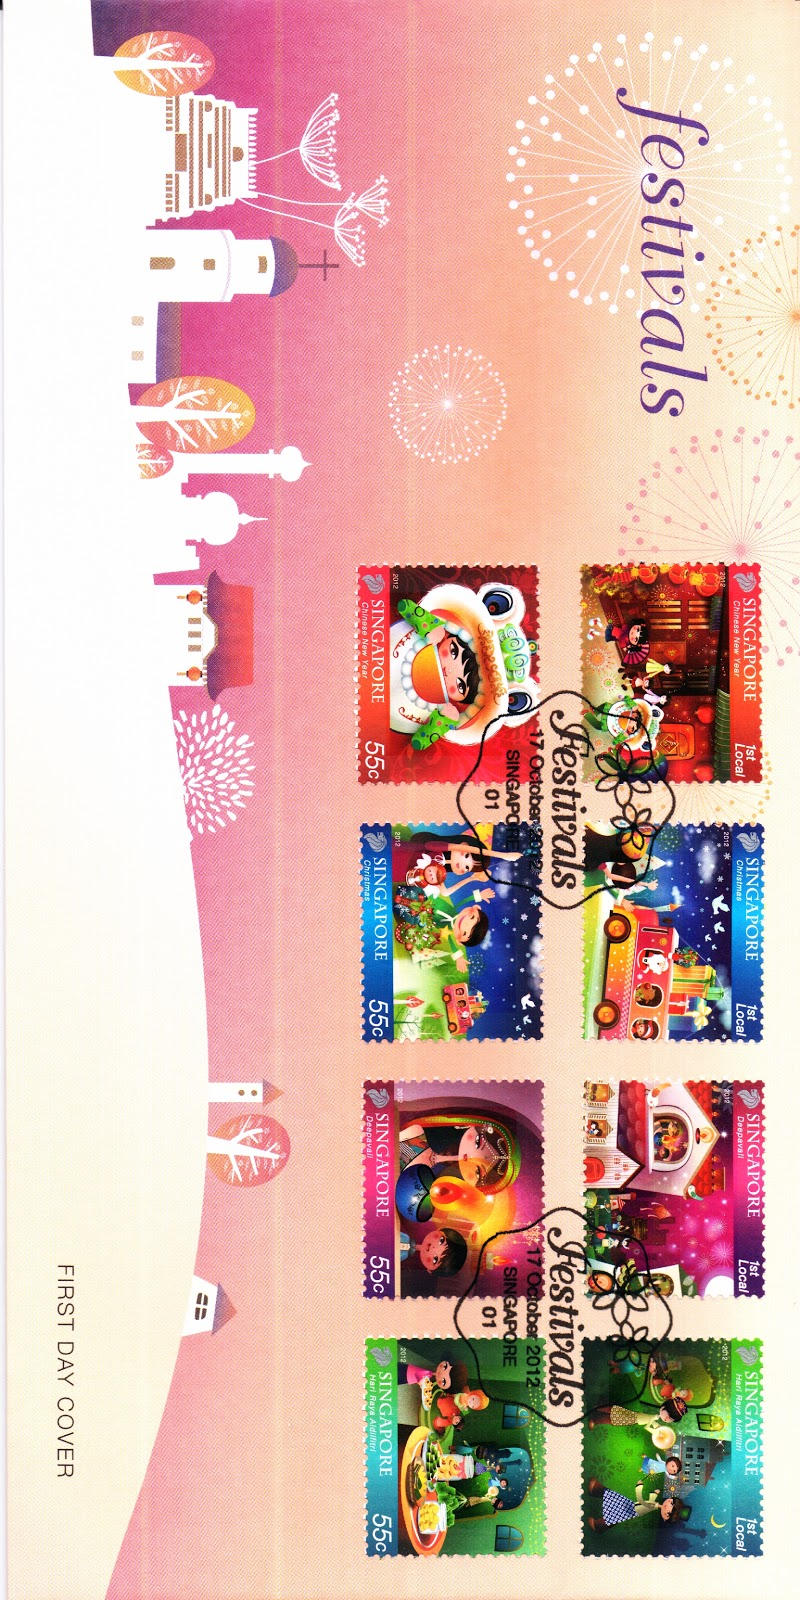 Pre-cancelled First Day Cover affixed with stamps S$4.10*